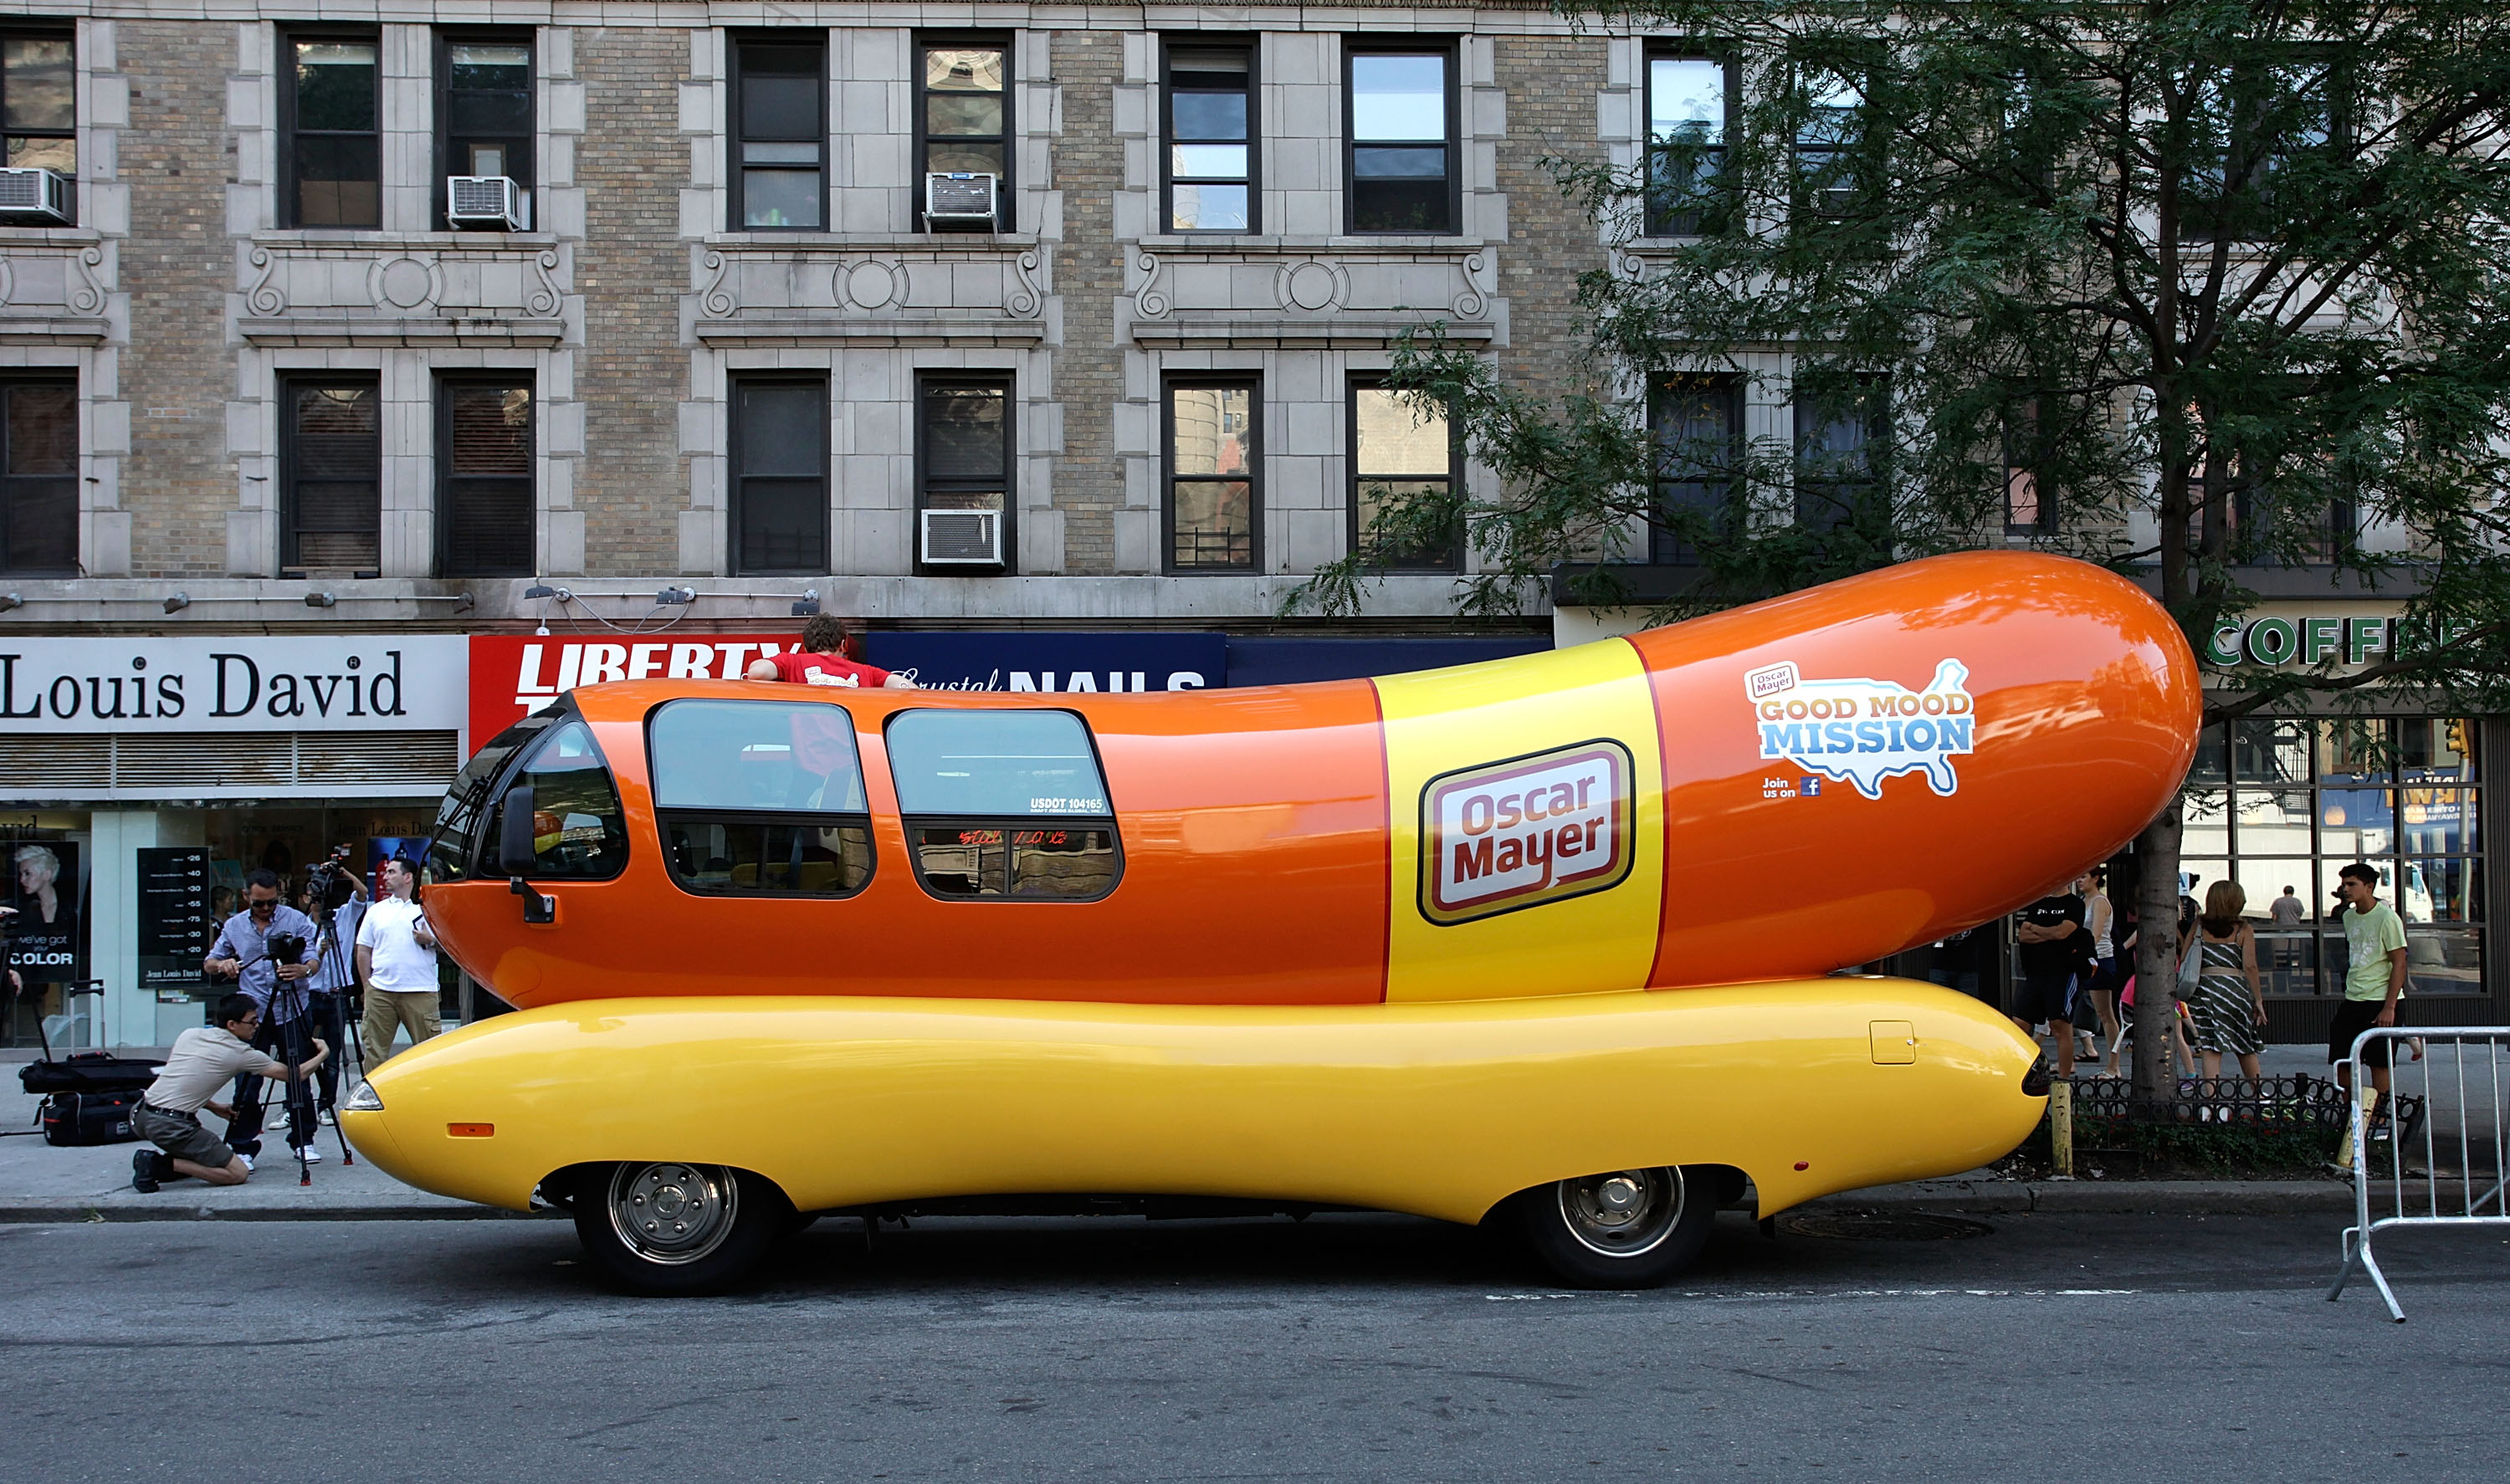 You Can Airbnb an Oscar Mayer Wienermobile This Summer, If That's Your Thing - VICE